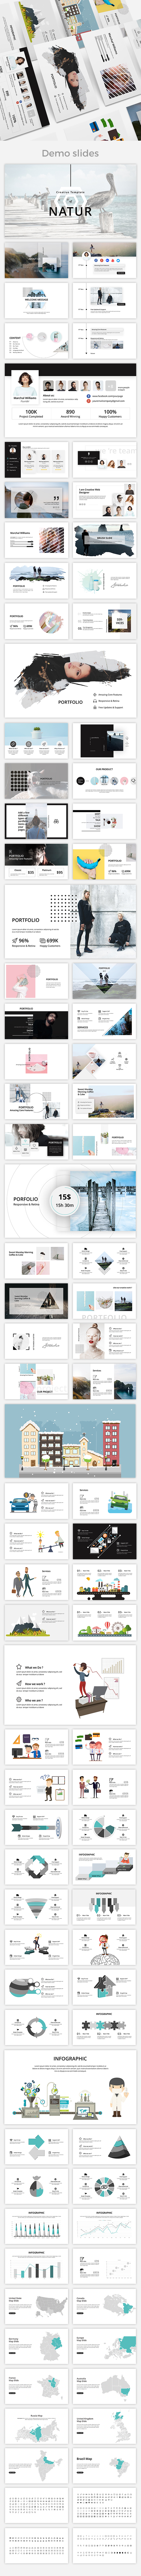 Natur Creative Google Slide Template - Google Slides Presentation Templates